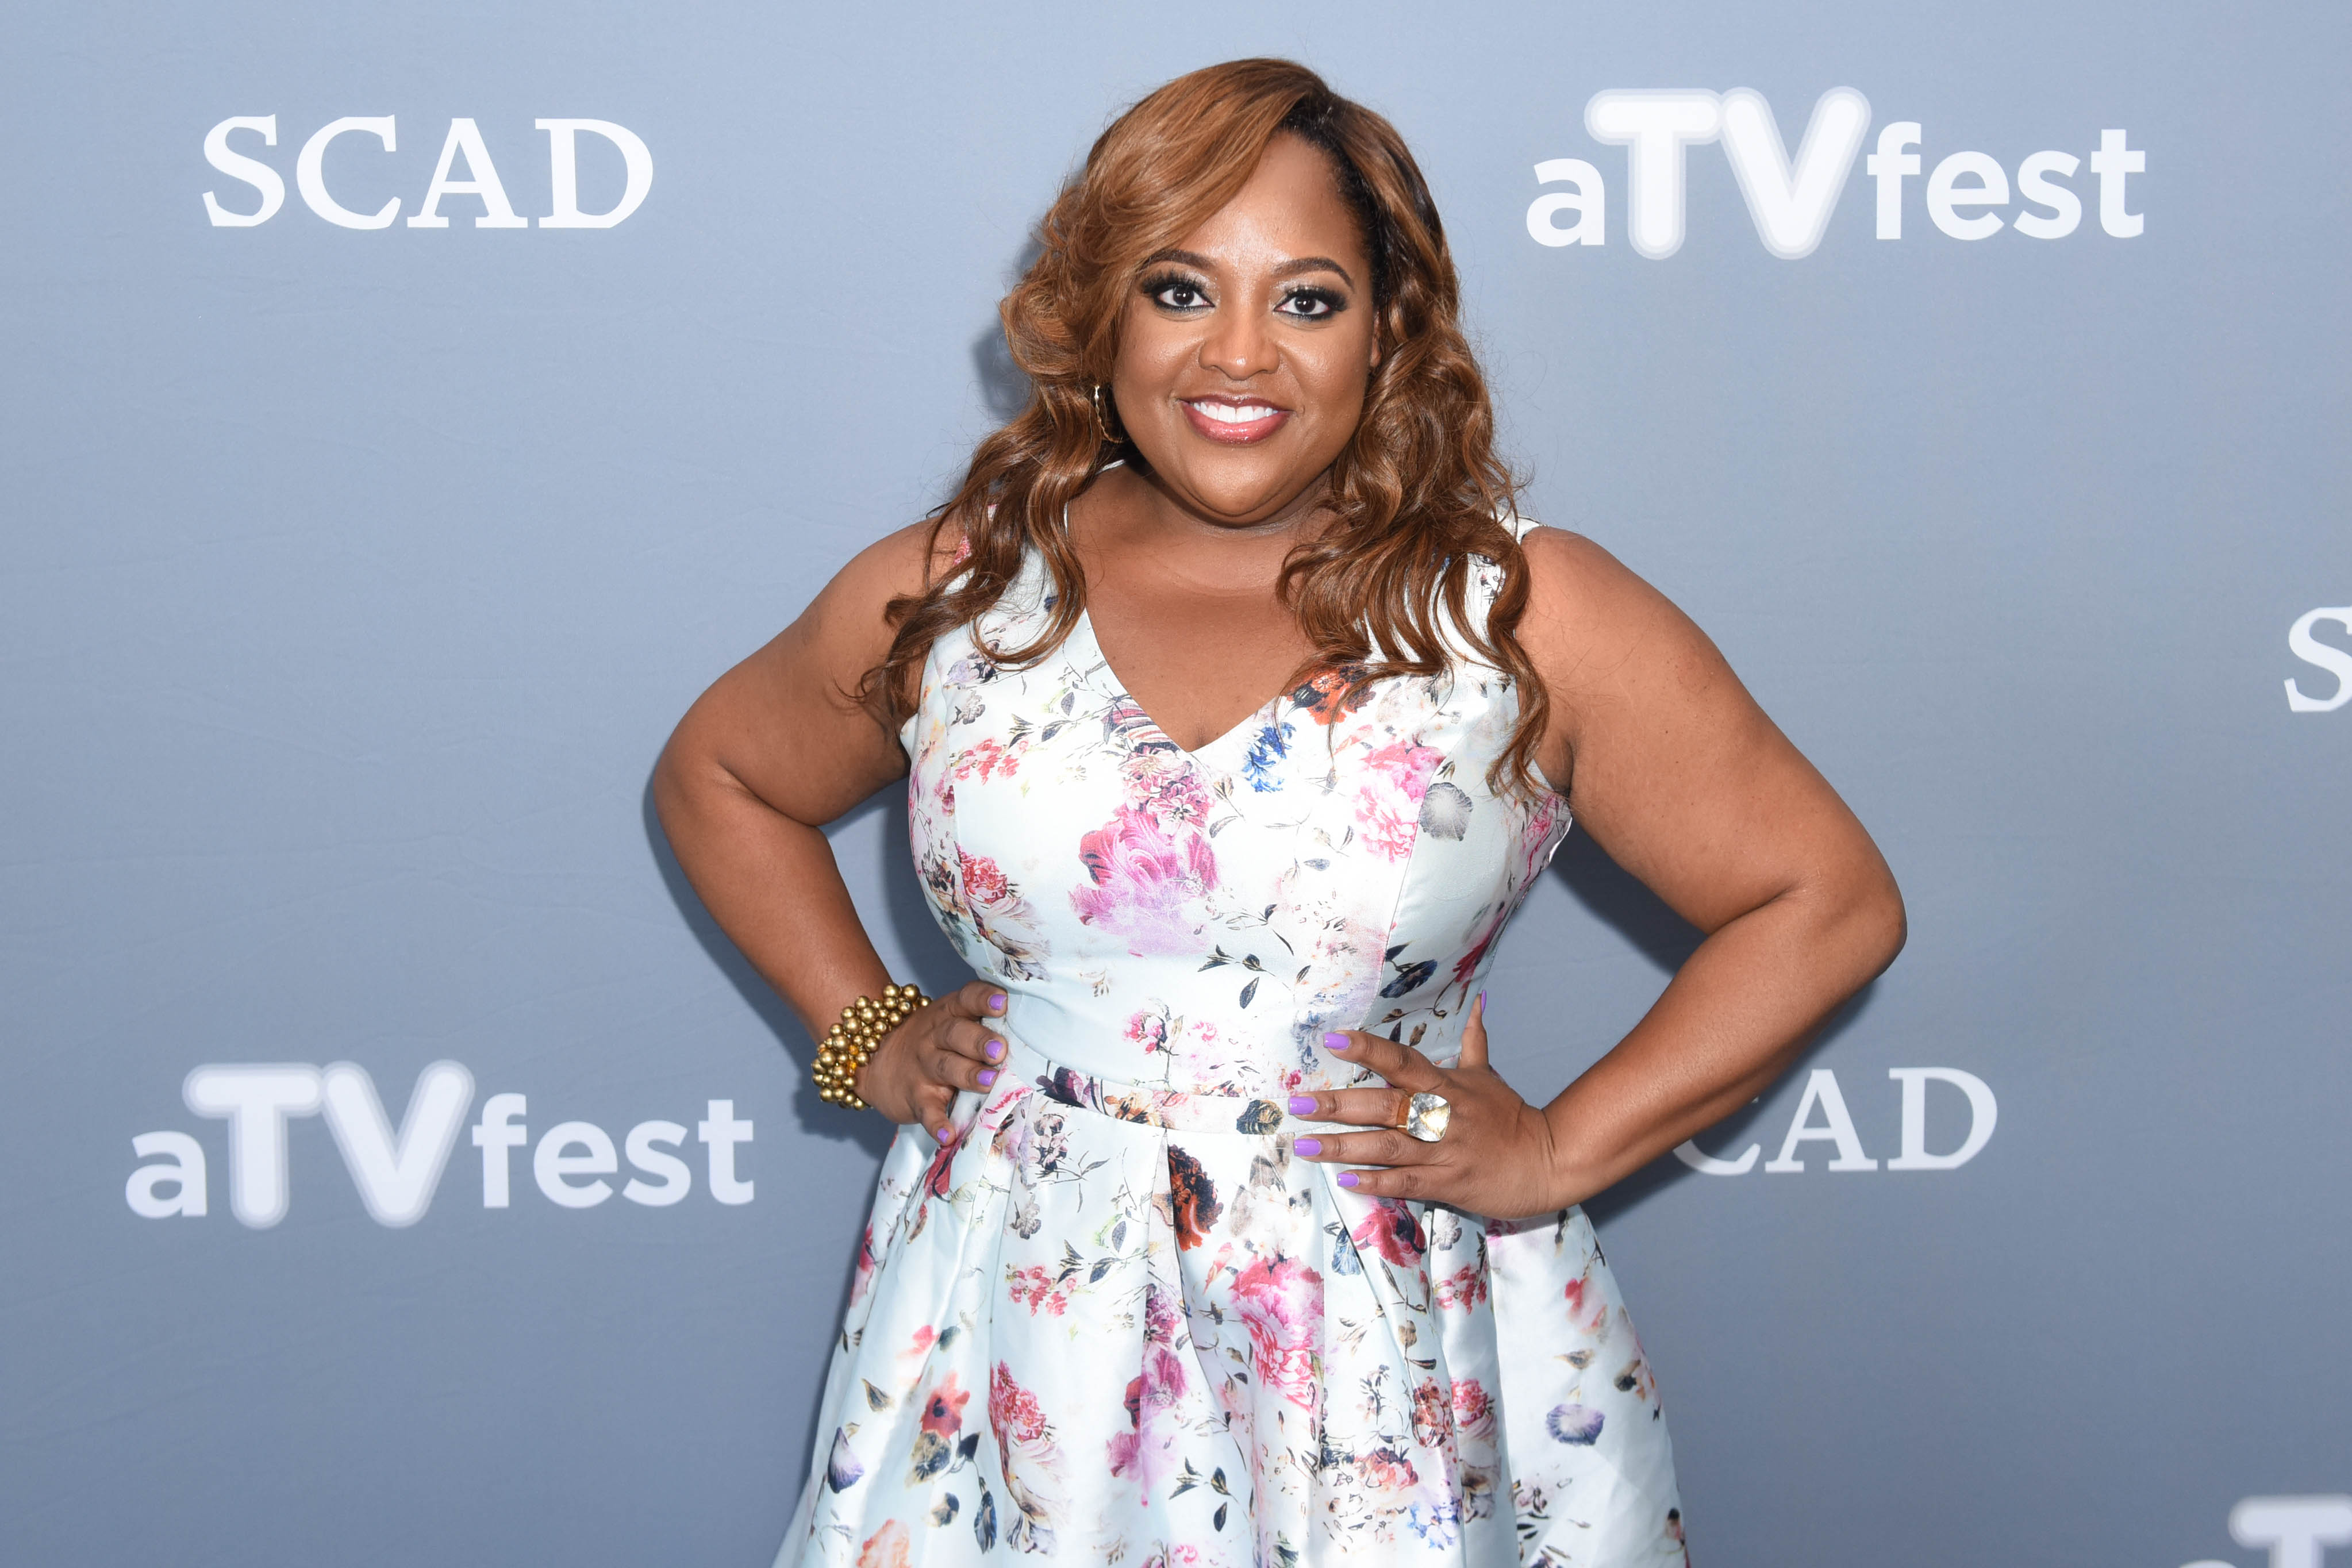 Sherri Shepherd at a promotional event for Trial & Error at aTVfest 2017 presented by SCAD on February 3, 2017 in Atlanta, Georgia.|Source: Getty Images